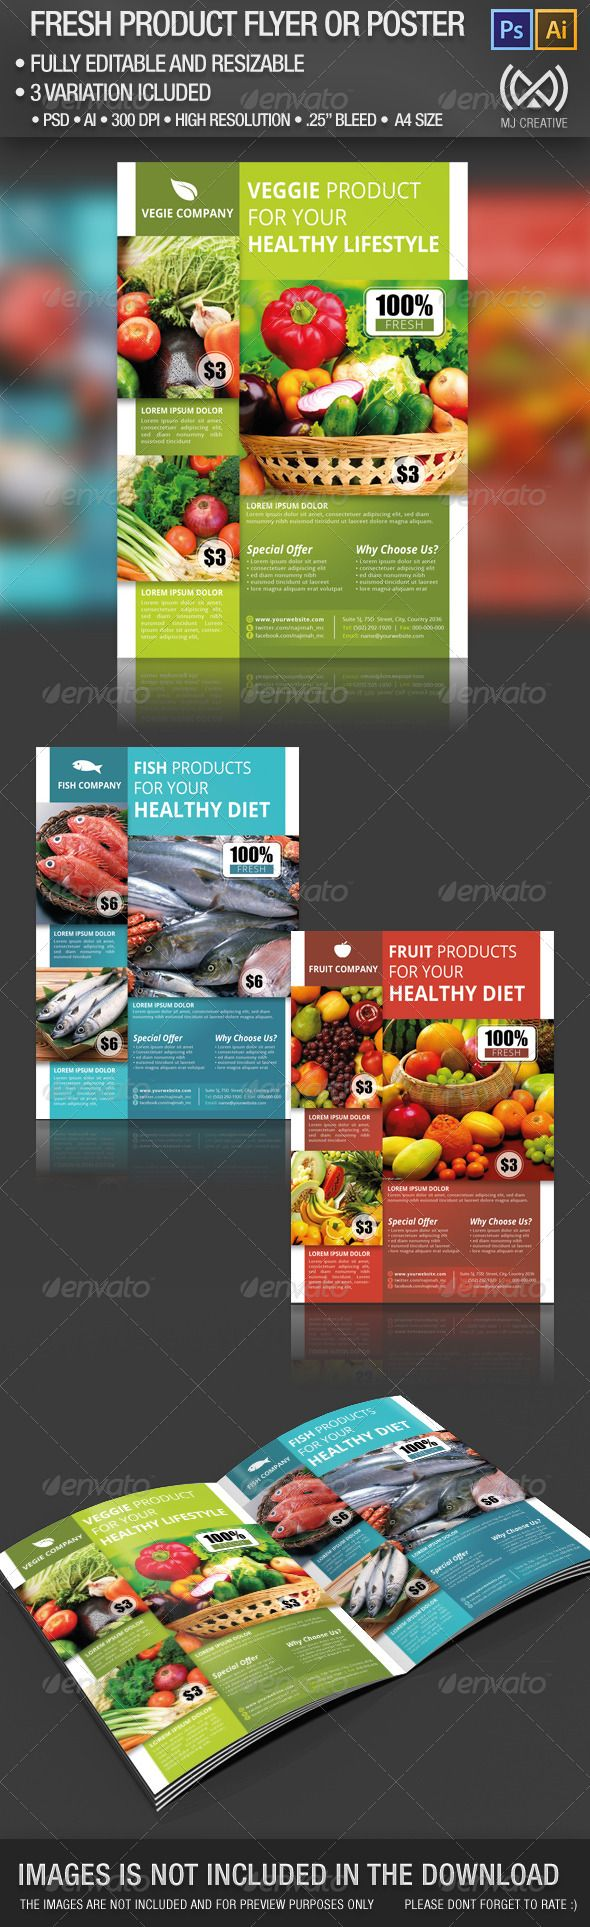 Fresh Product Flyer & Poster Get the template here http://graphicriver.net/item/fresh-product-flyer-poster/4484935?ref=MJCreative